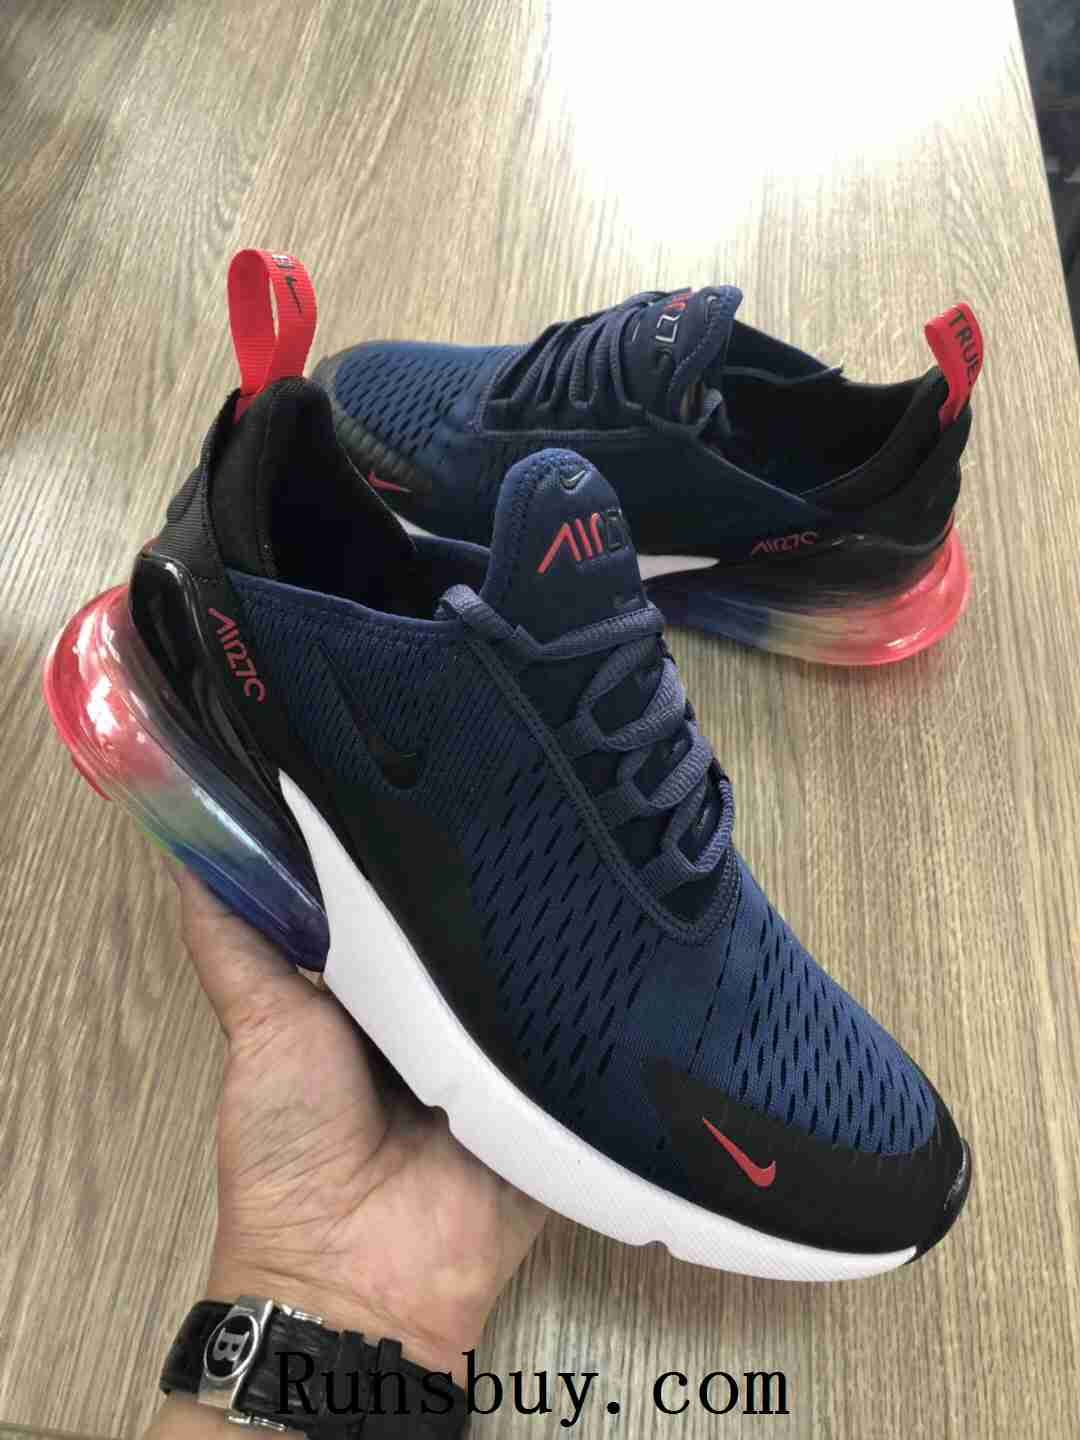 new styles 86d44 50709 Nike Air Max 270 Betrue Blue Black Rainbow Women Men Running Shoes